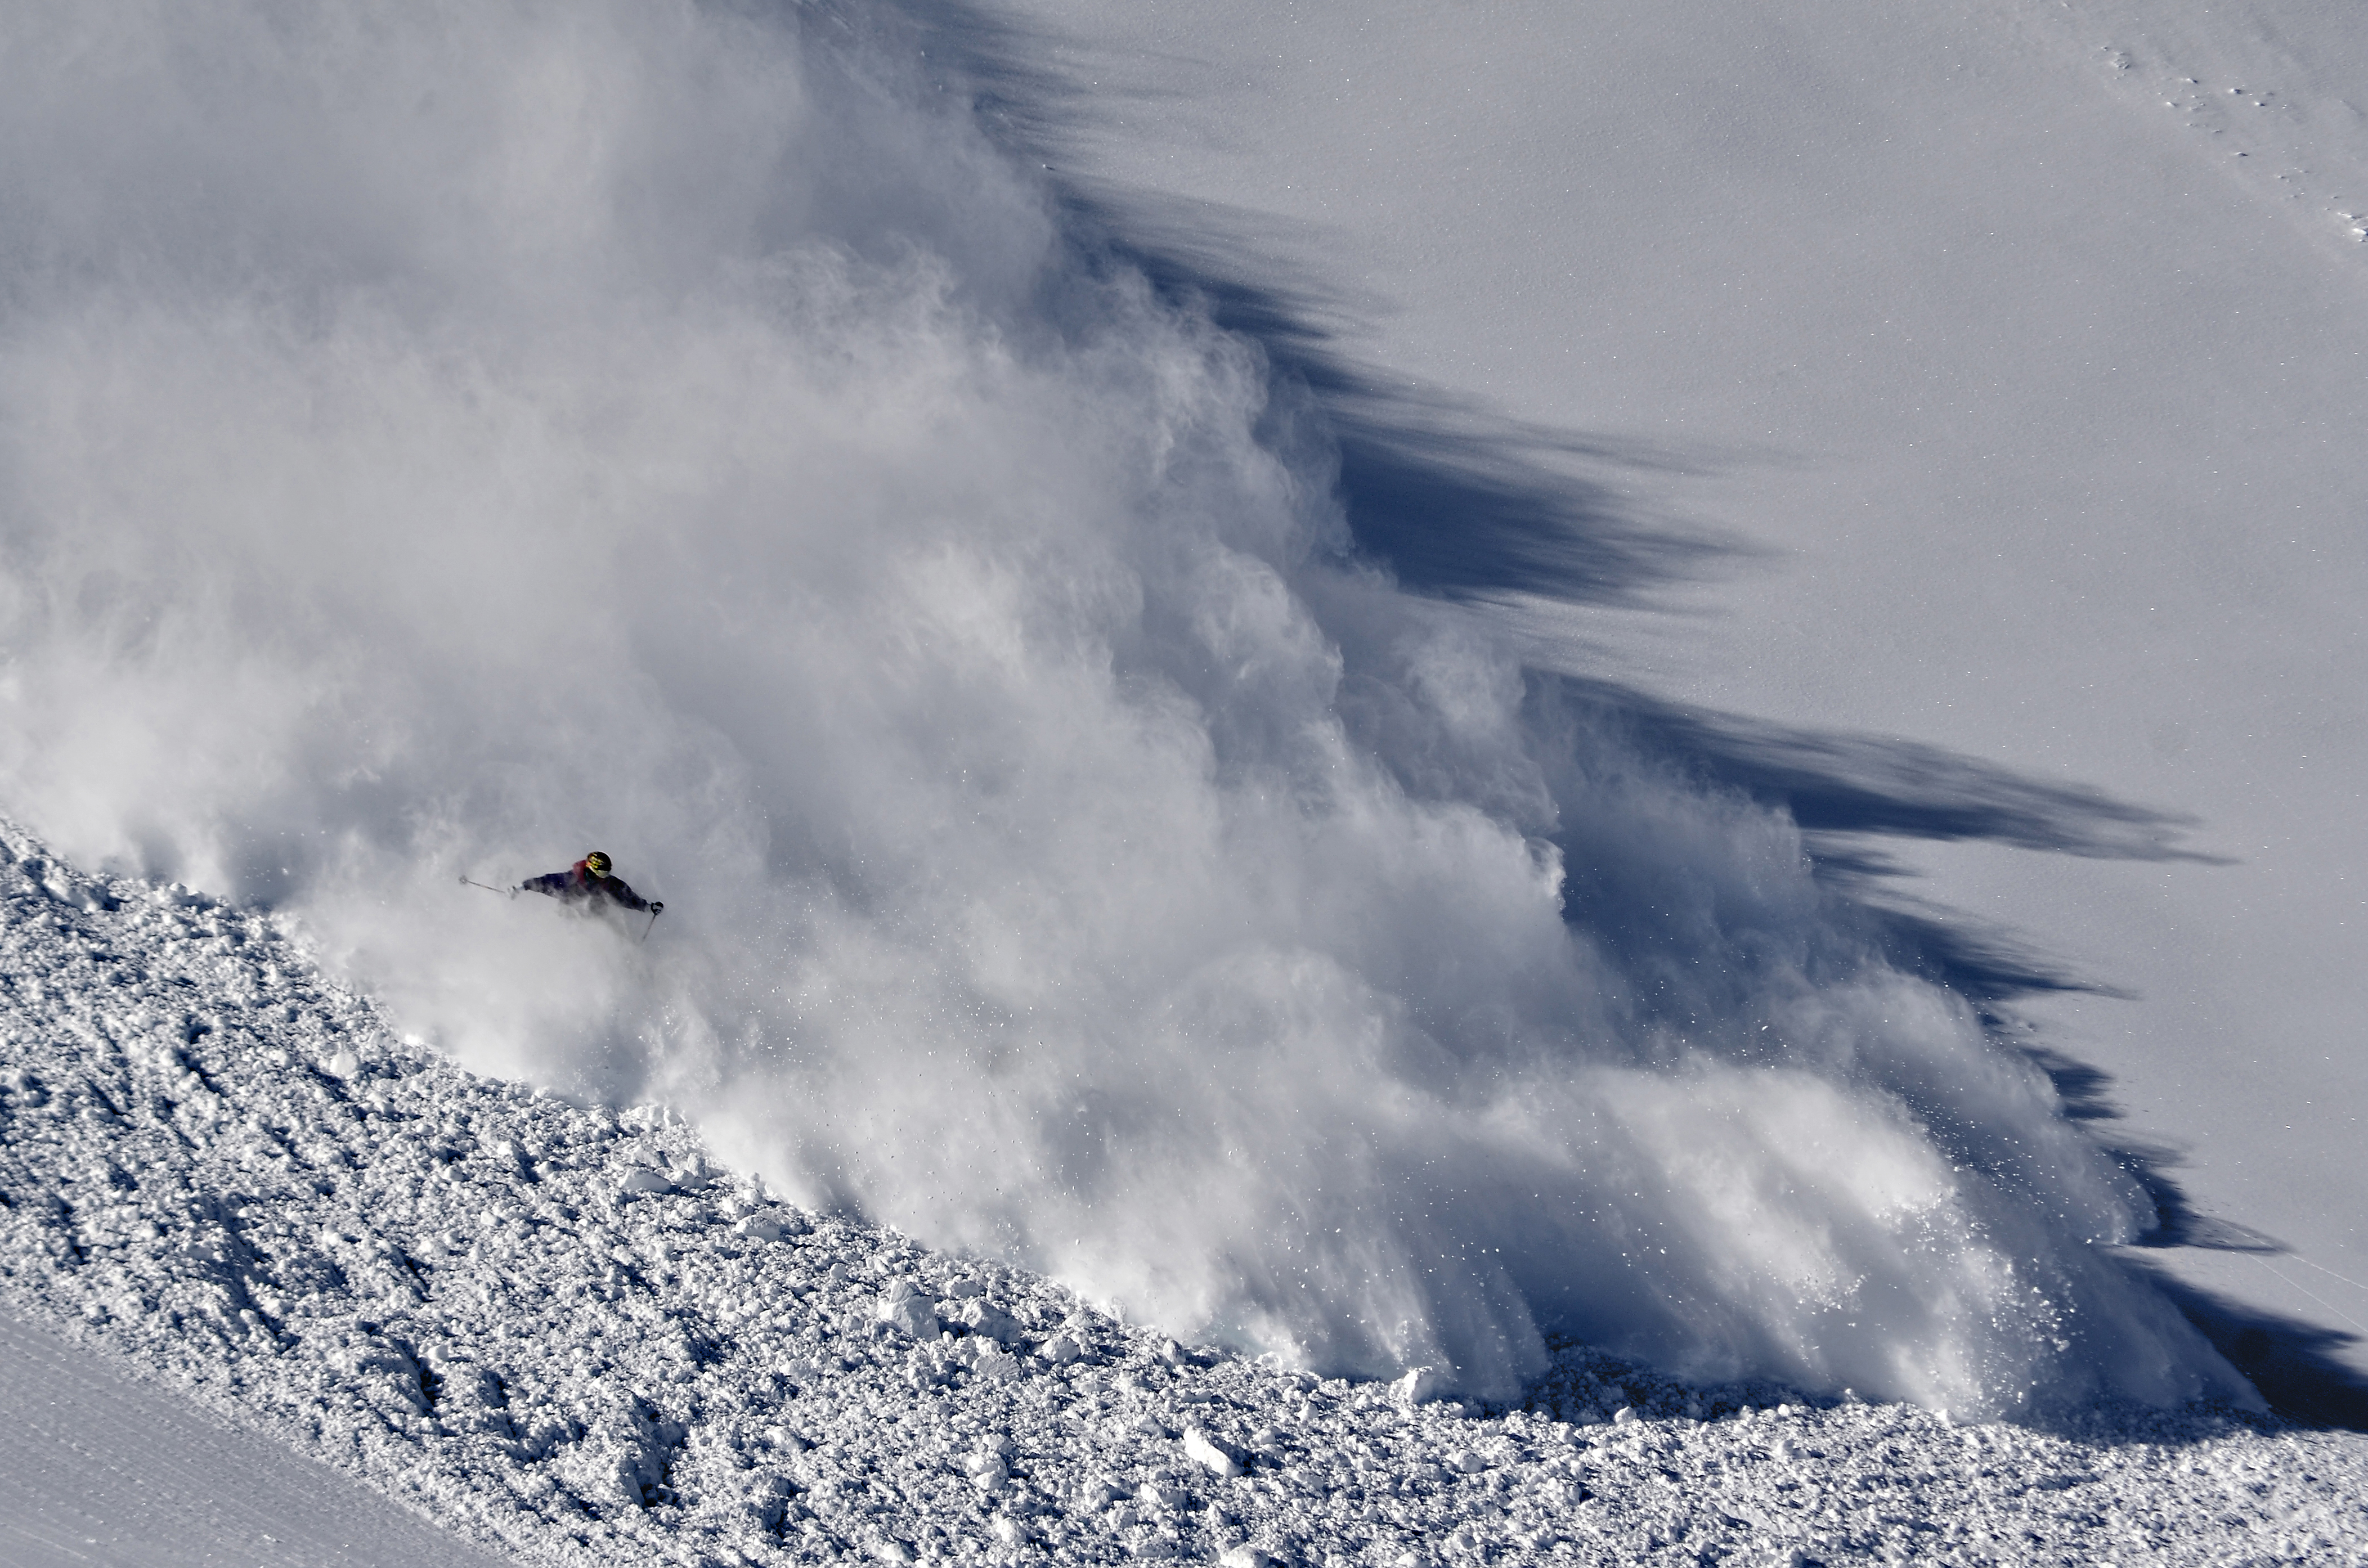 snow avalanche wallpapers high quality | download free